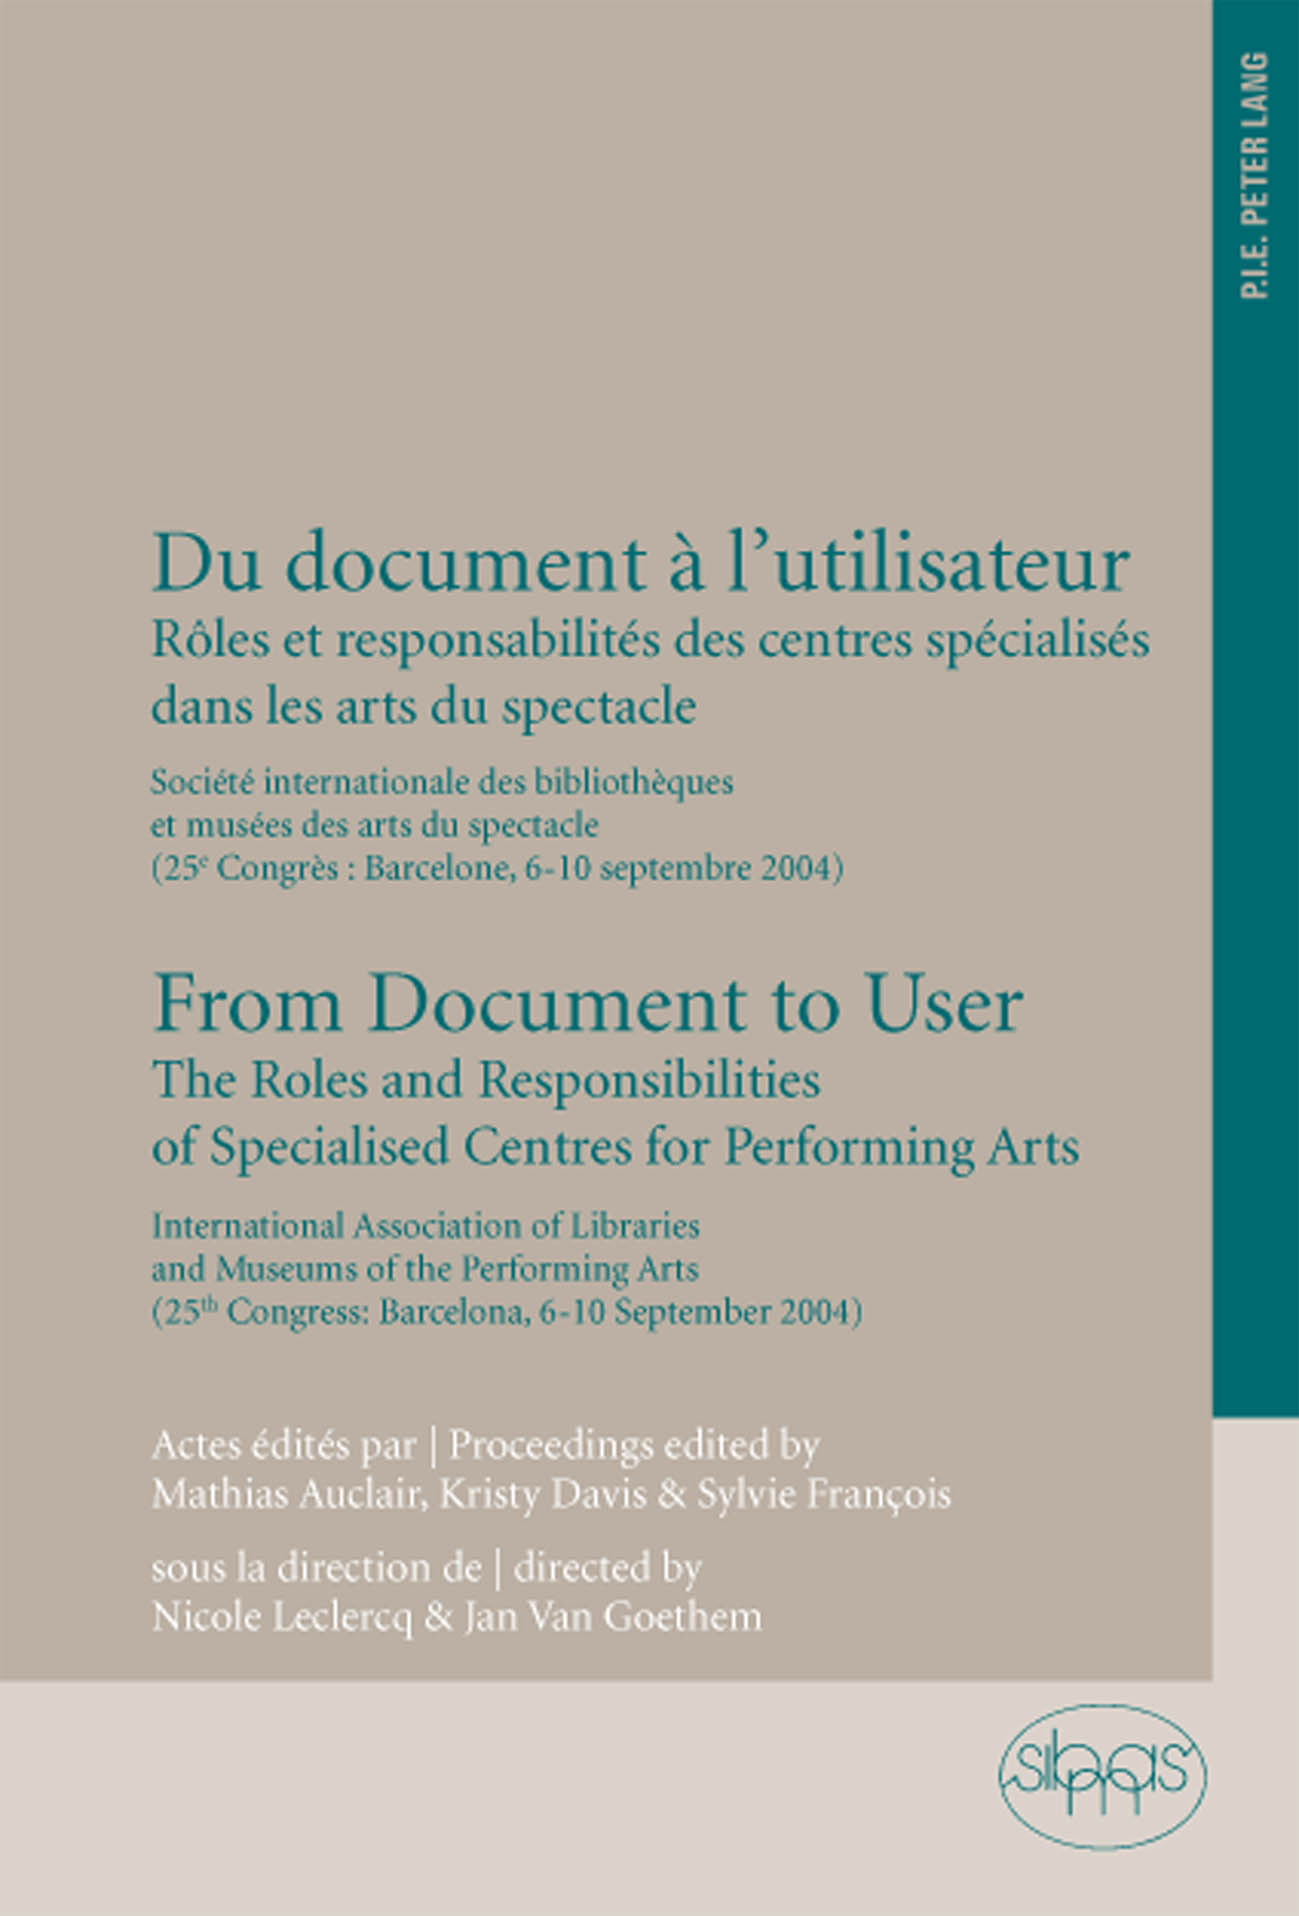 DU DOCUMENT A L'UTILISATEUR/FROM DOCUMENT TO USER